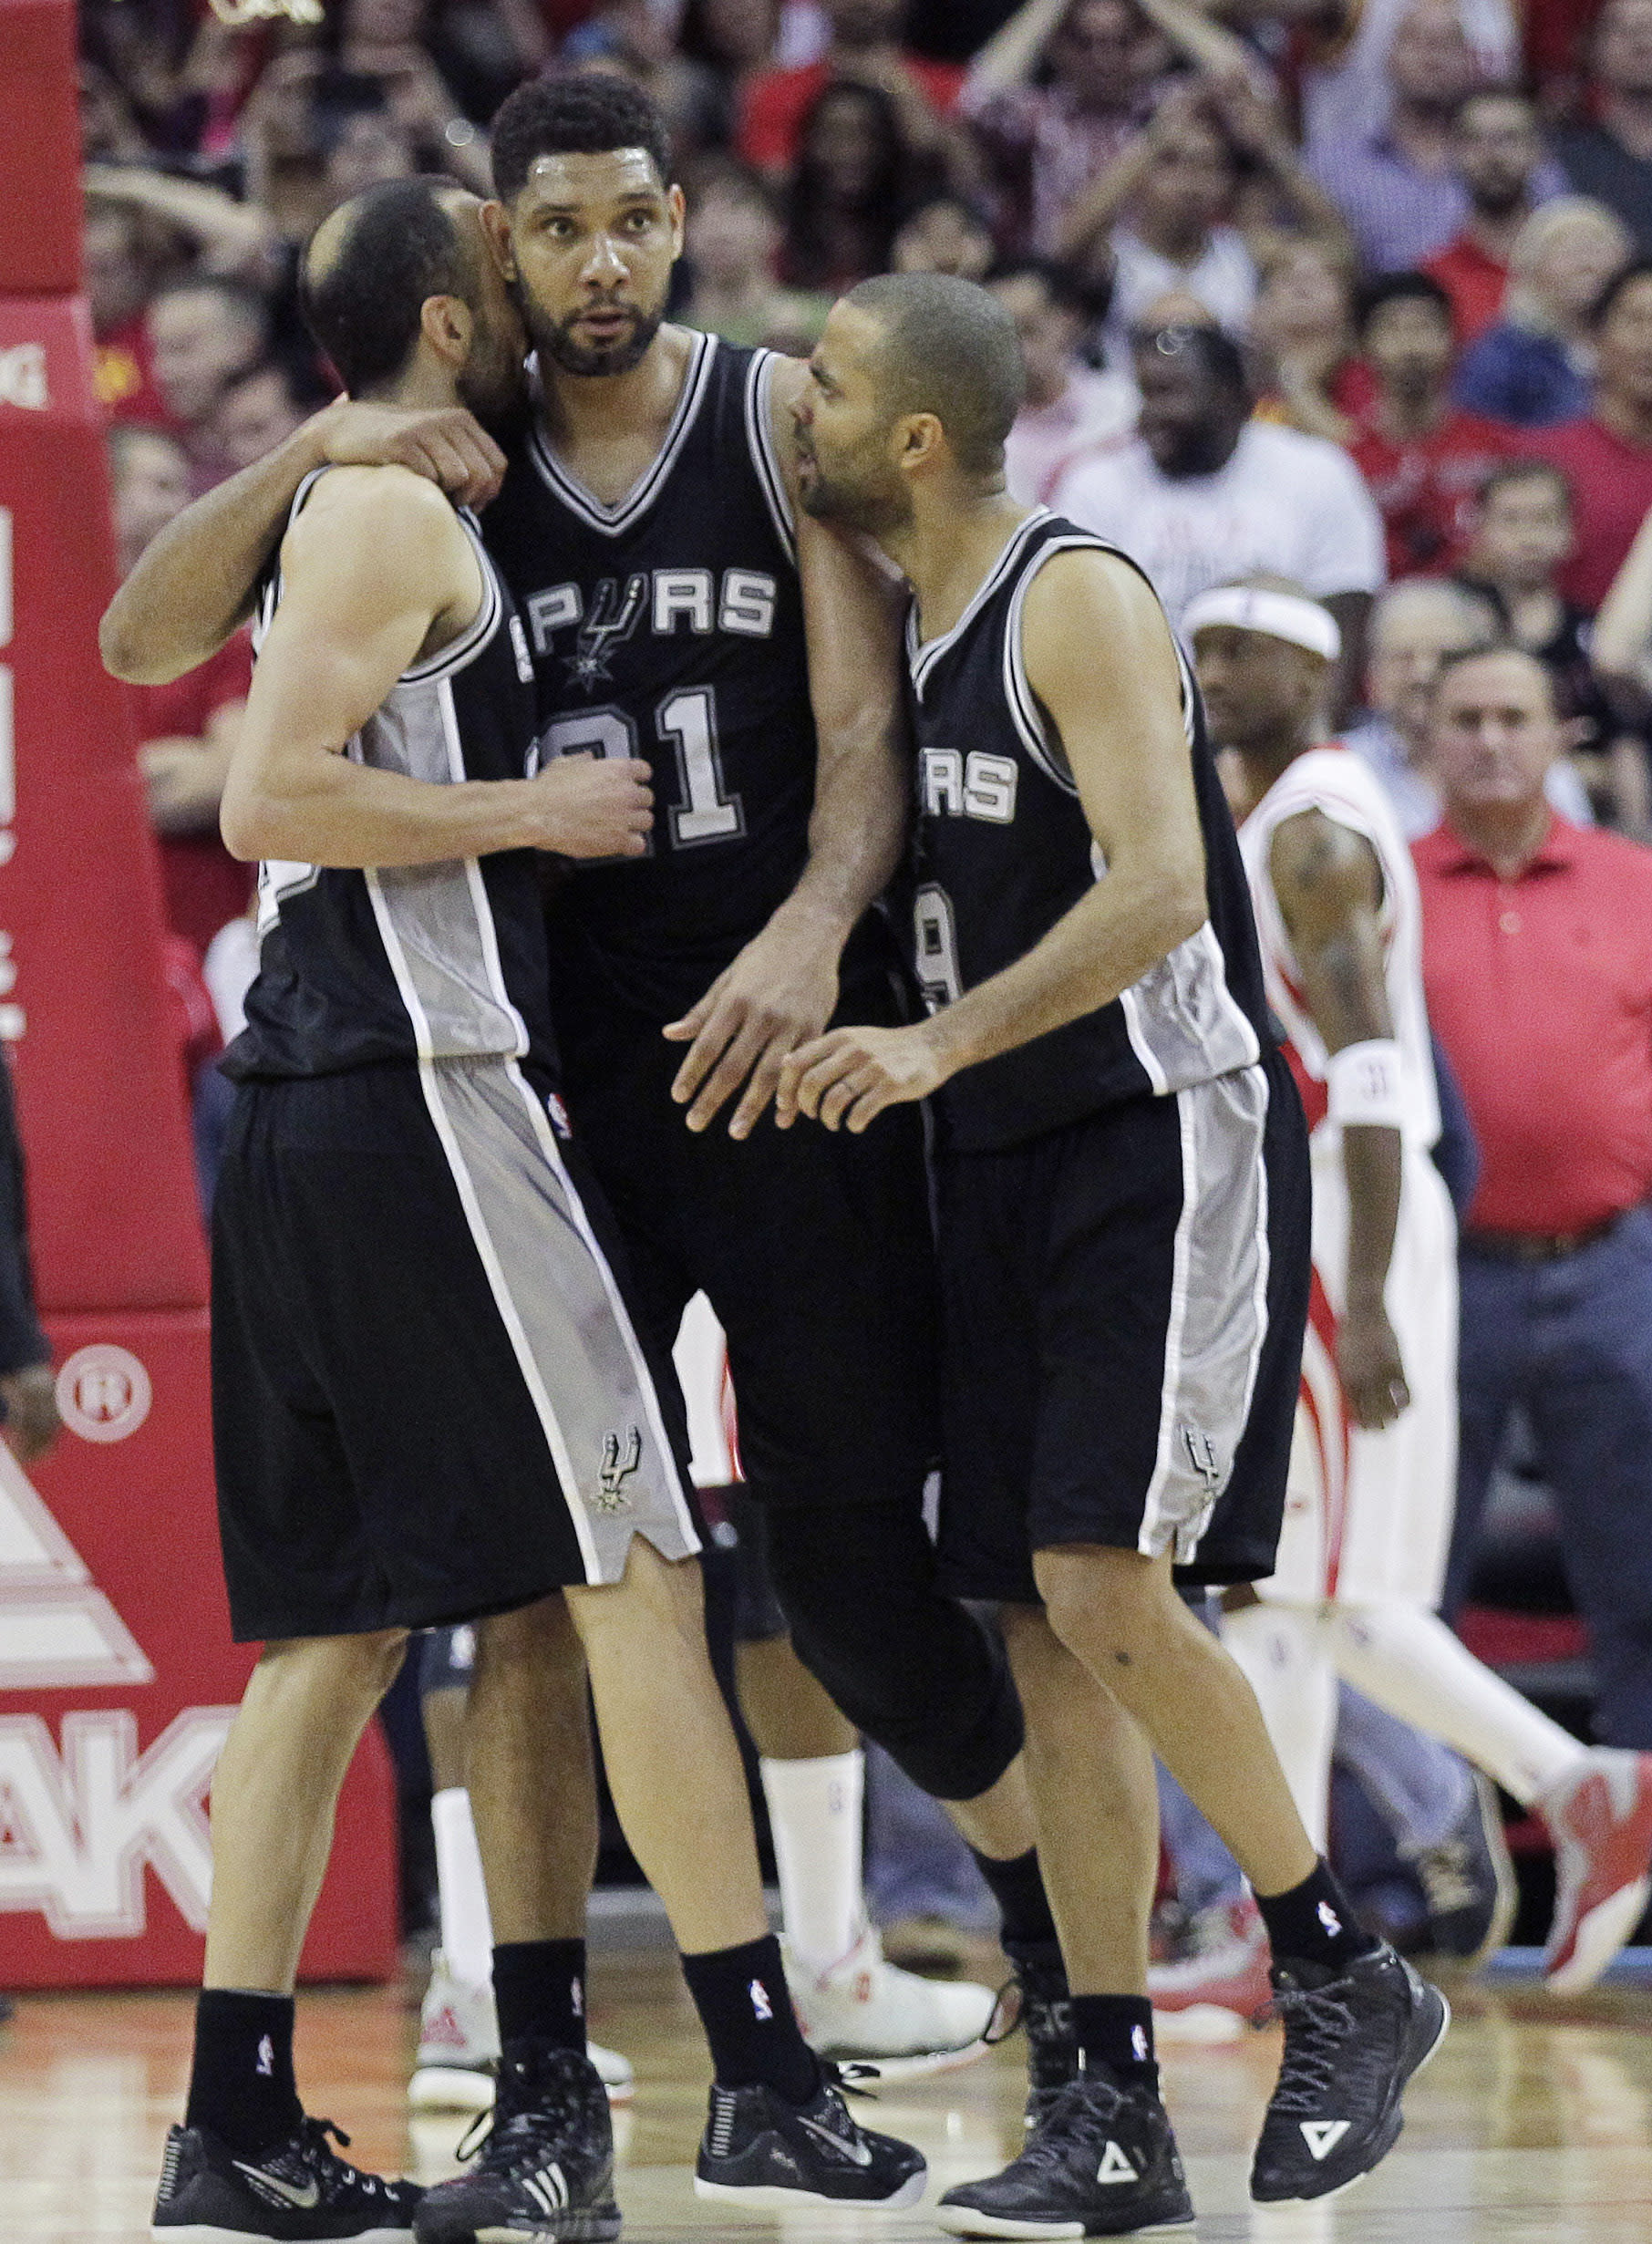 Western Conference teams face perilous path to NBA Finals